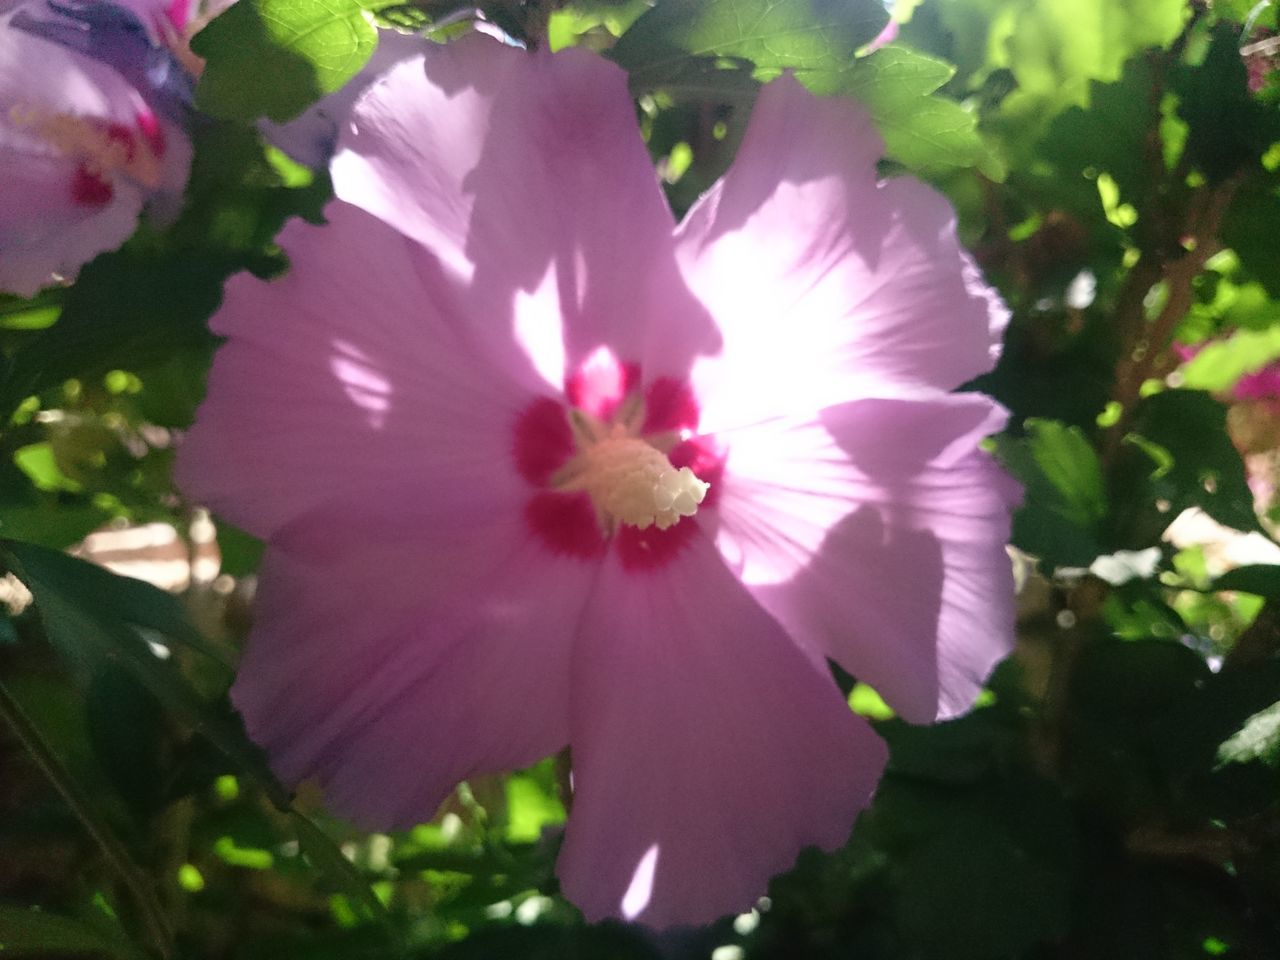 flower, petal, fragility, flower head, beauty in nature, freshness, nature, growth, no people, day, plant, close-up, blooming, outdoors, hibiscus, petunia